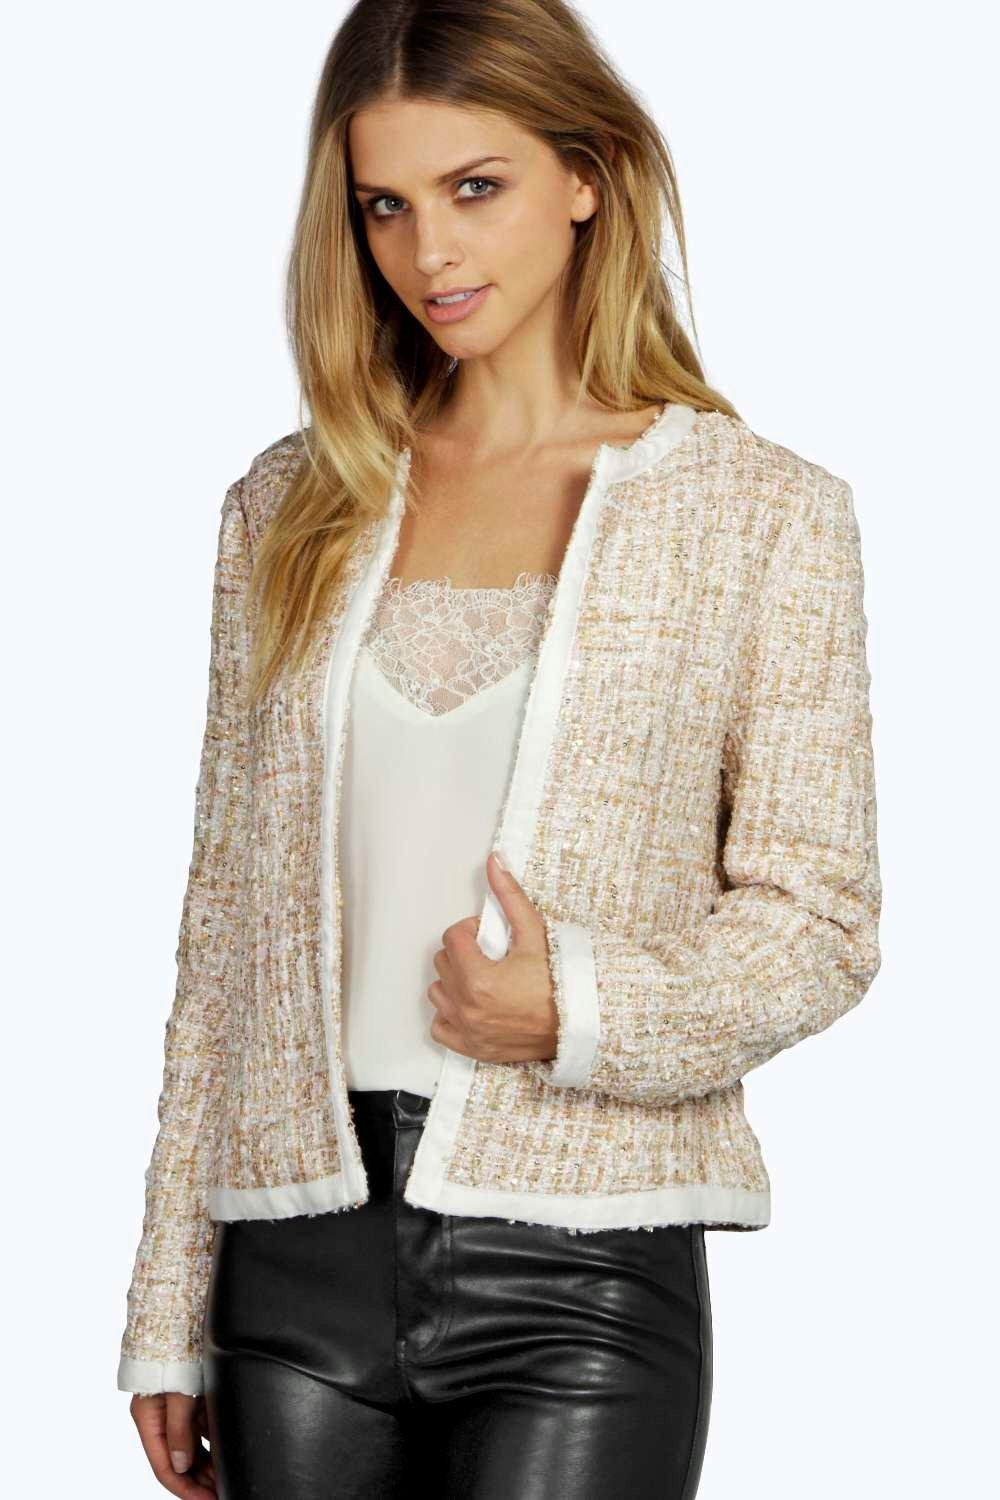 Boohoo Womens Ellie Boucle Metallic Edge TO Edge Jacket